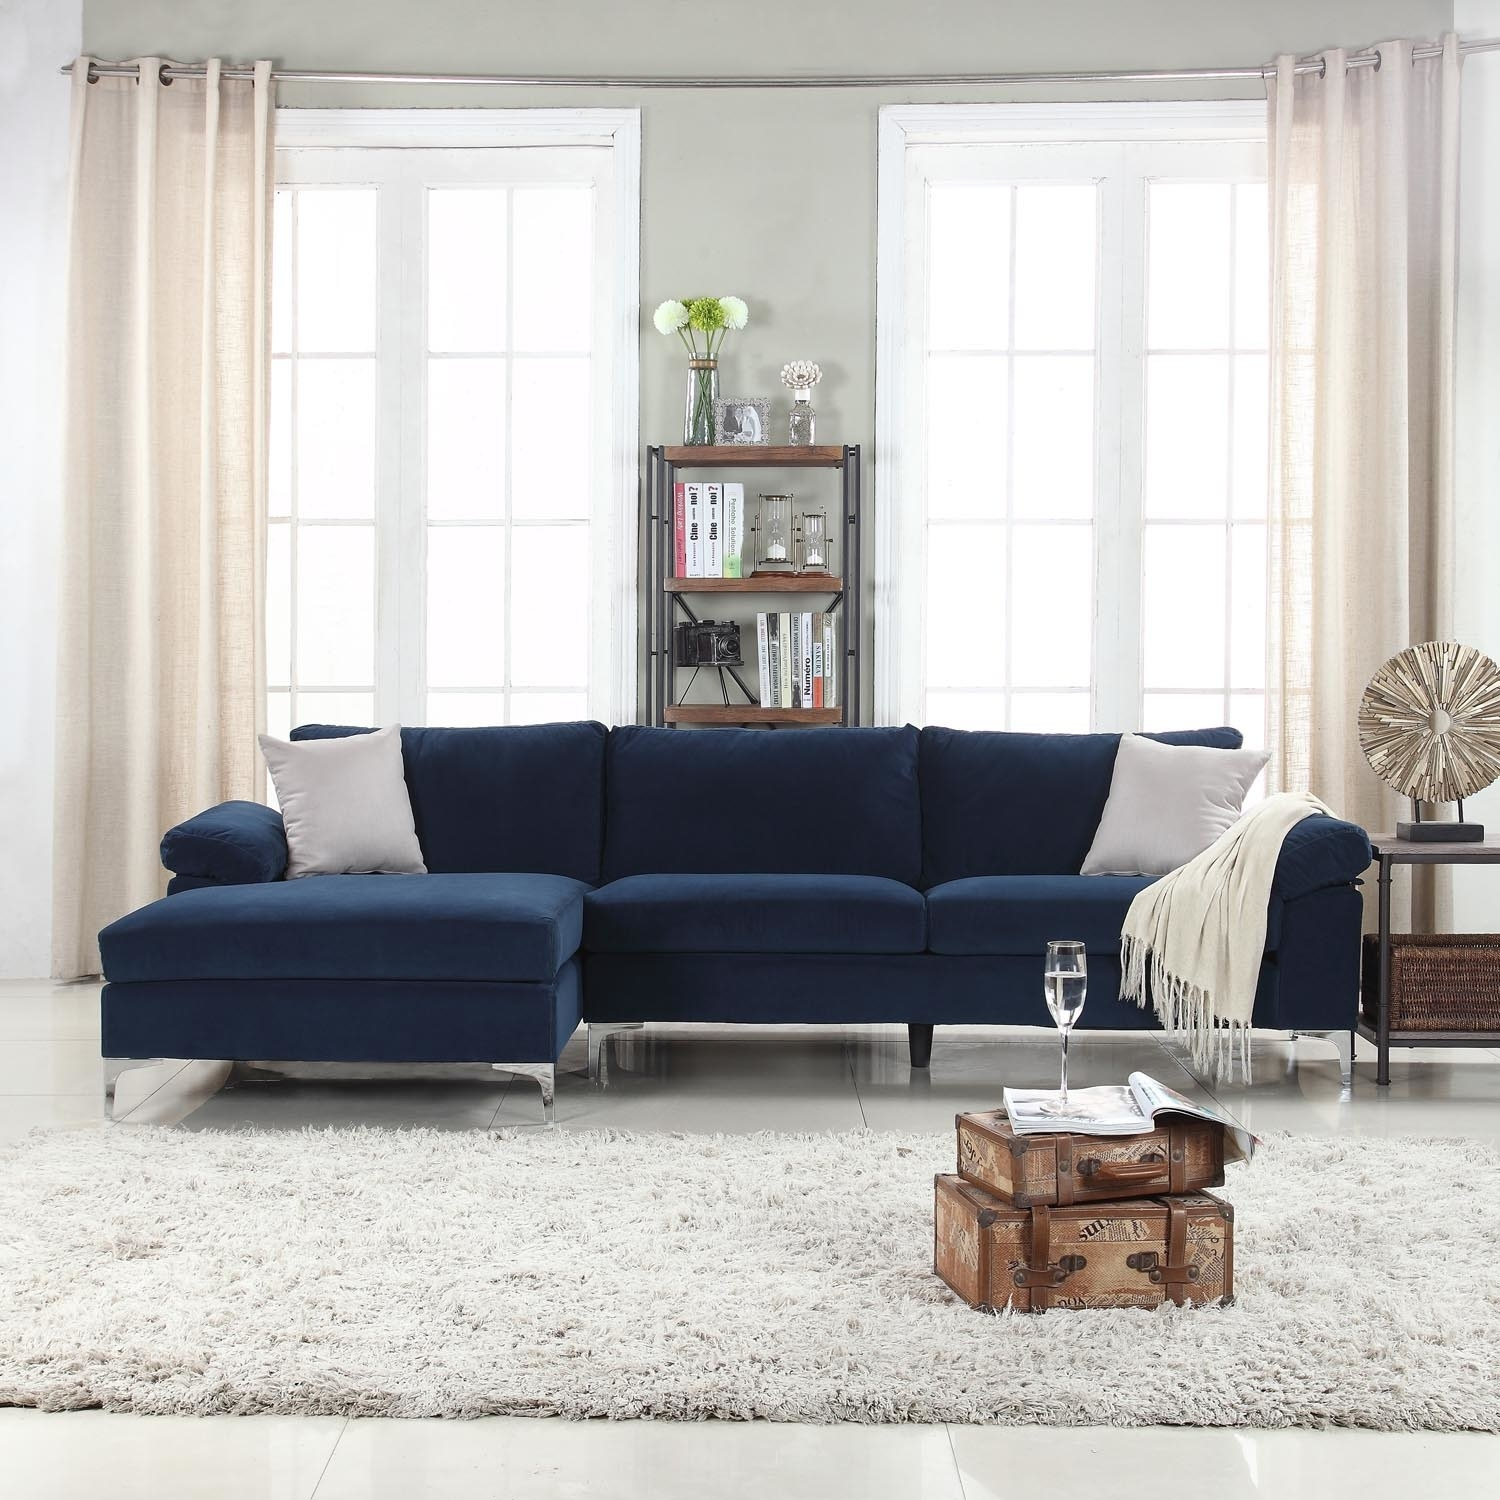 A dark blue sectional sofa with a chaise